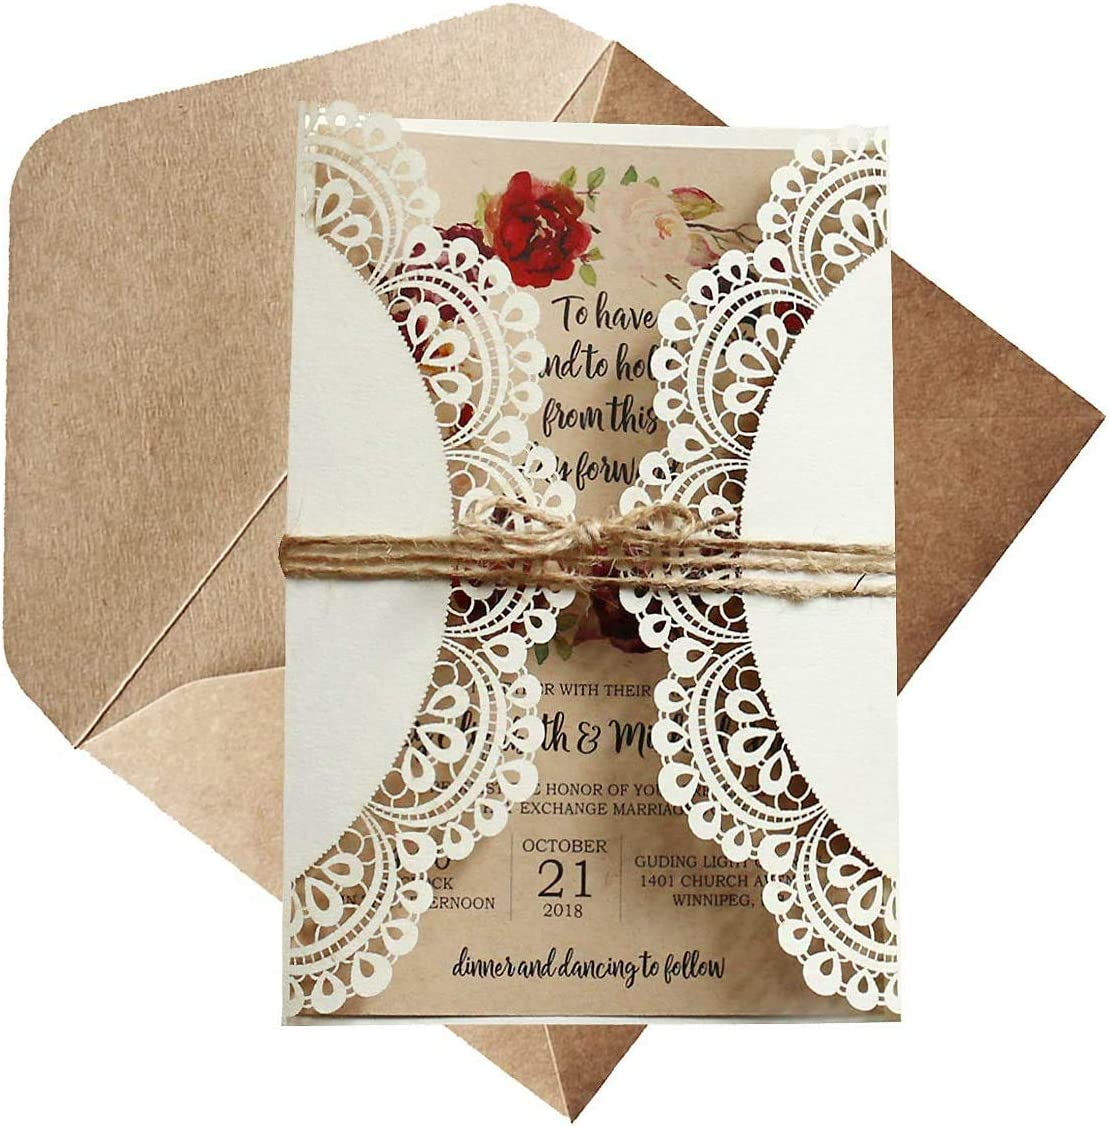 Off White Rustic Wedding Invitations Kraft Paper Invitation Cards Laser-Cut  Invitations DIY Bridal Shower Invites - Set of 3 pcs (Blank Invitations)